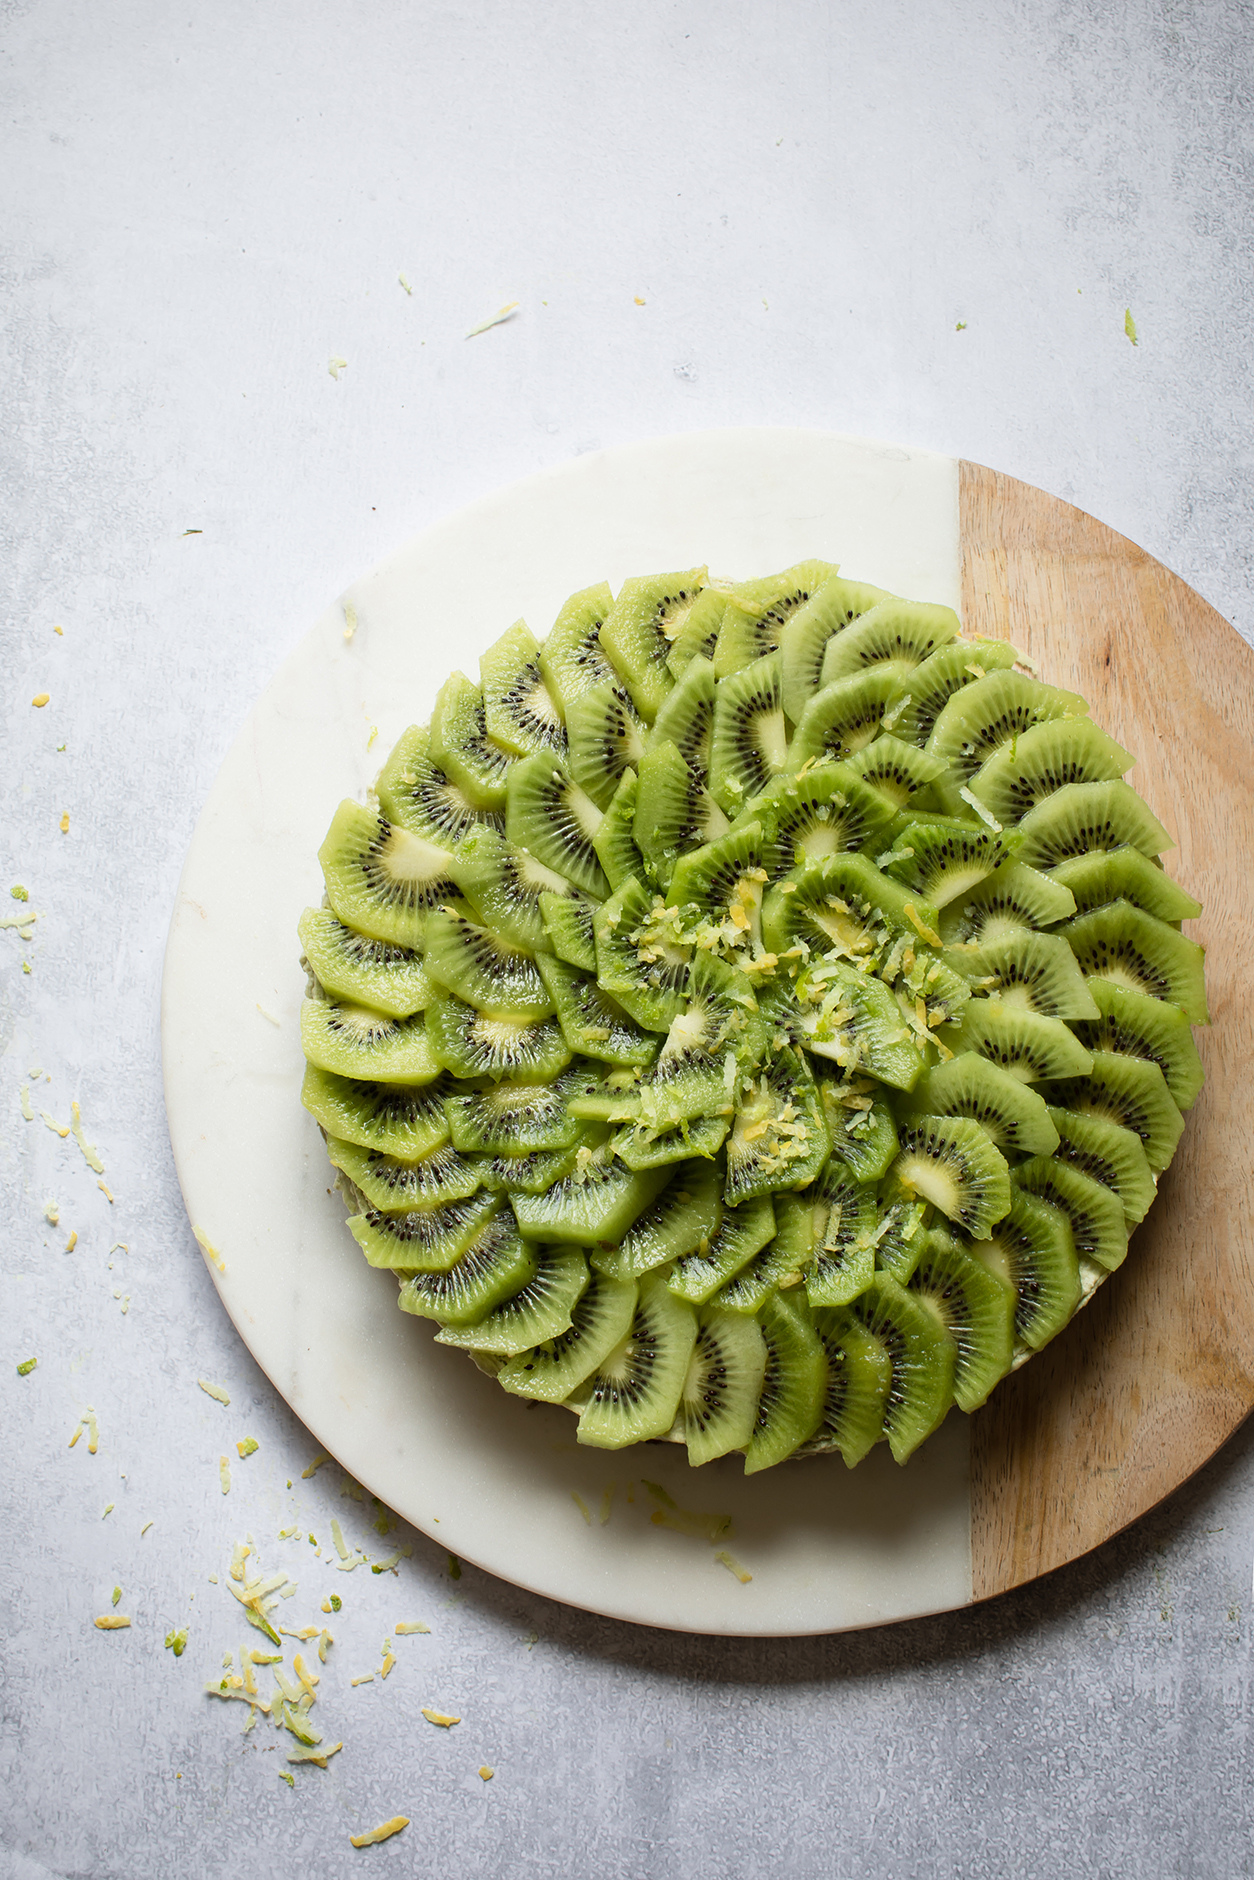 raw kiwi and lime cheesecake, refined sugar free cheesecake, raw kiwi and key lime cheesecake, Modern Food Stories, raw cheesecake recipes, keto pudding recipes, keto treats, keto dessert recipes, Paleo dessert recipes, Paleo Crust, vegan cake, gluten free cake recipe, raw cake, kiwi cheesecake, sugar free lemon cheesecake